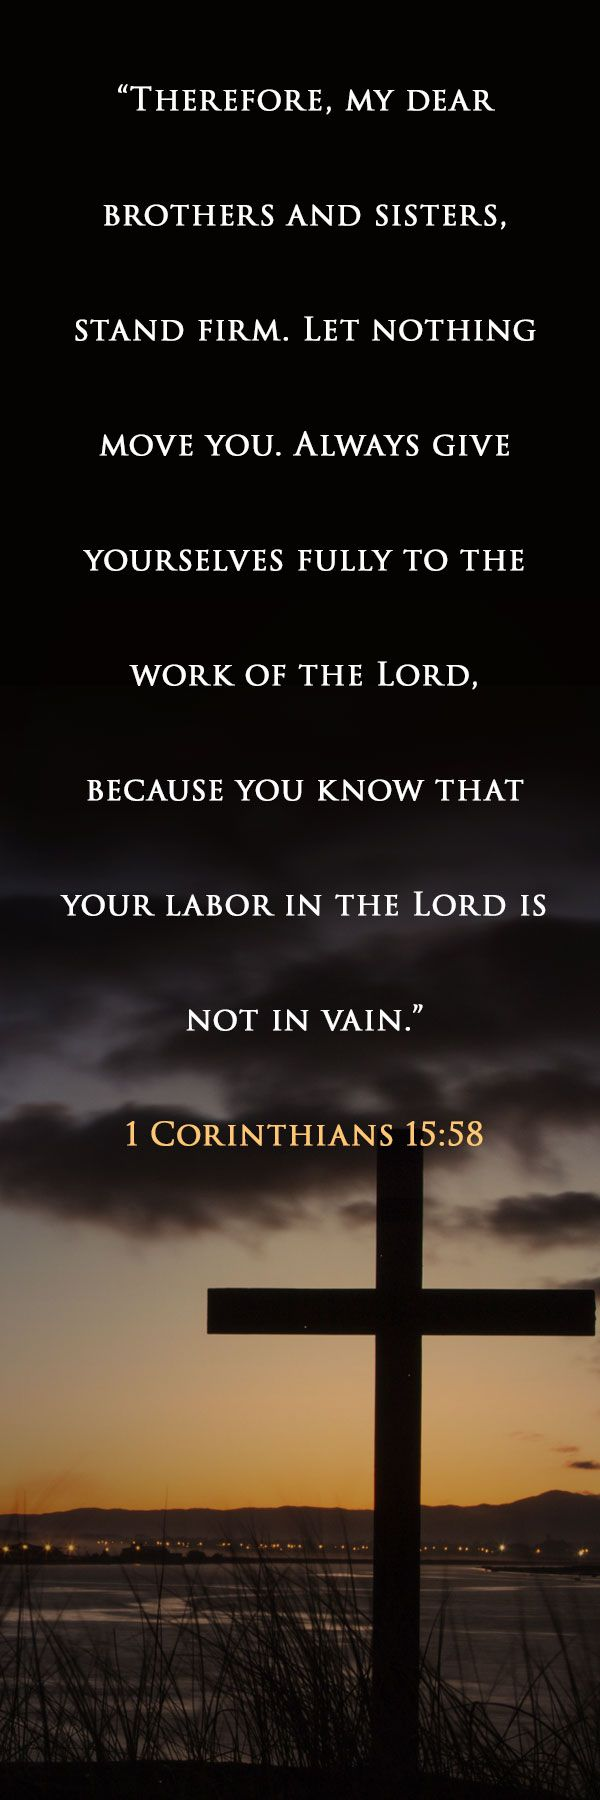 """Therefore, my dear brothers and sisters, stand firm.  Let nothing move you.  Always give yourselves fully to the work of the Lord, because you know that your labor in the Lord is not in vain.""  - 1 Corinthians 15:58 #Faith ACLJ.org"